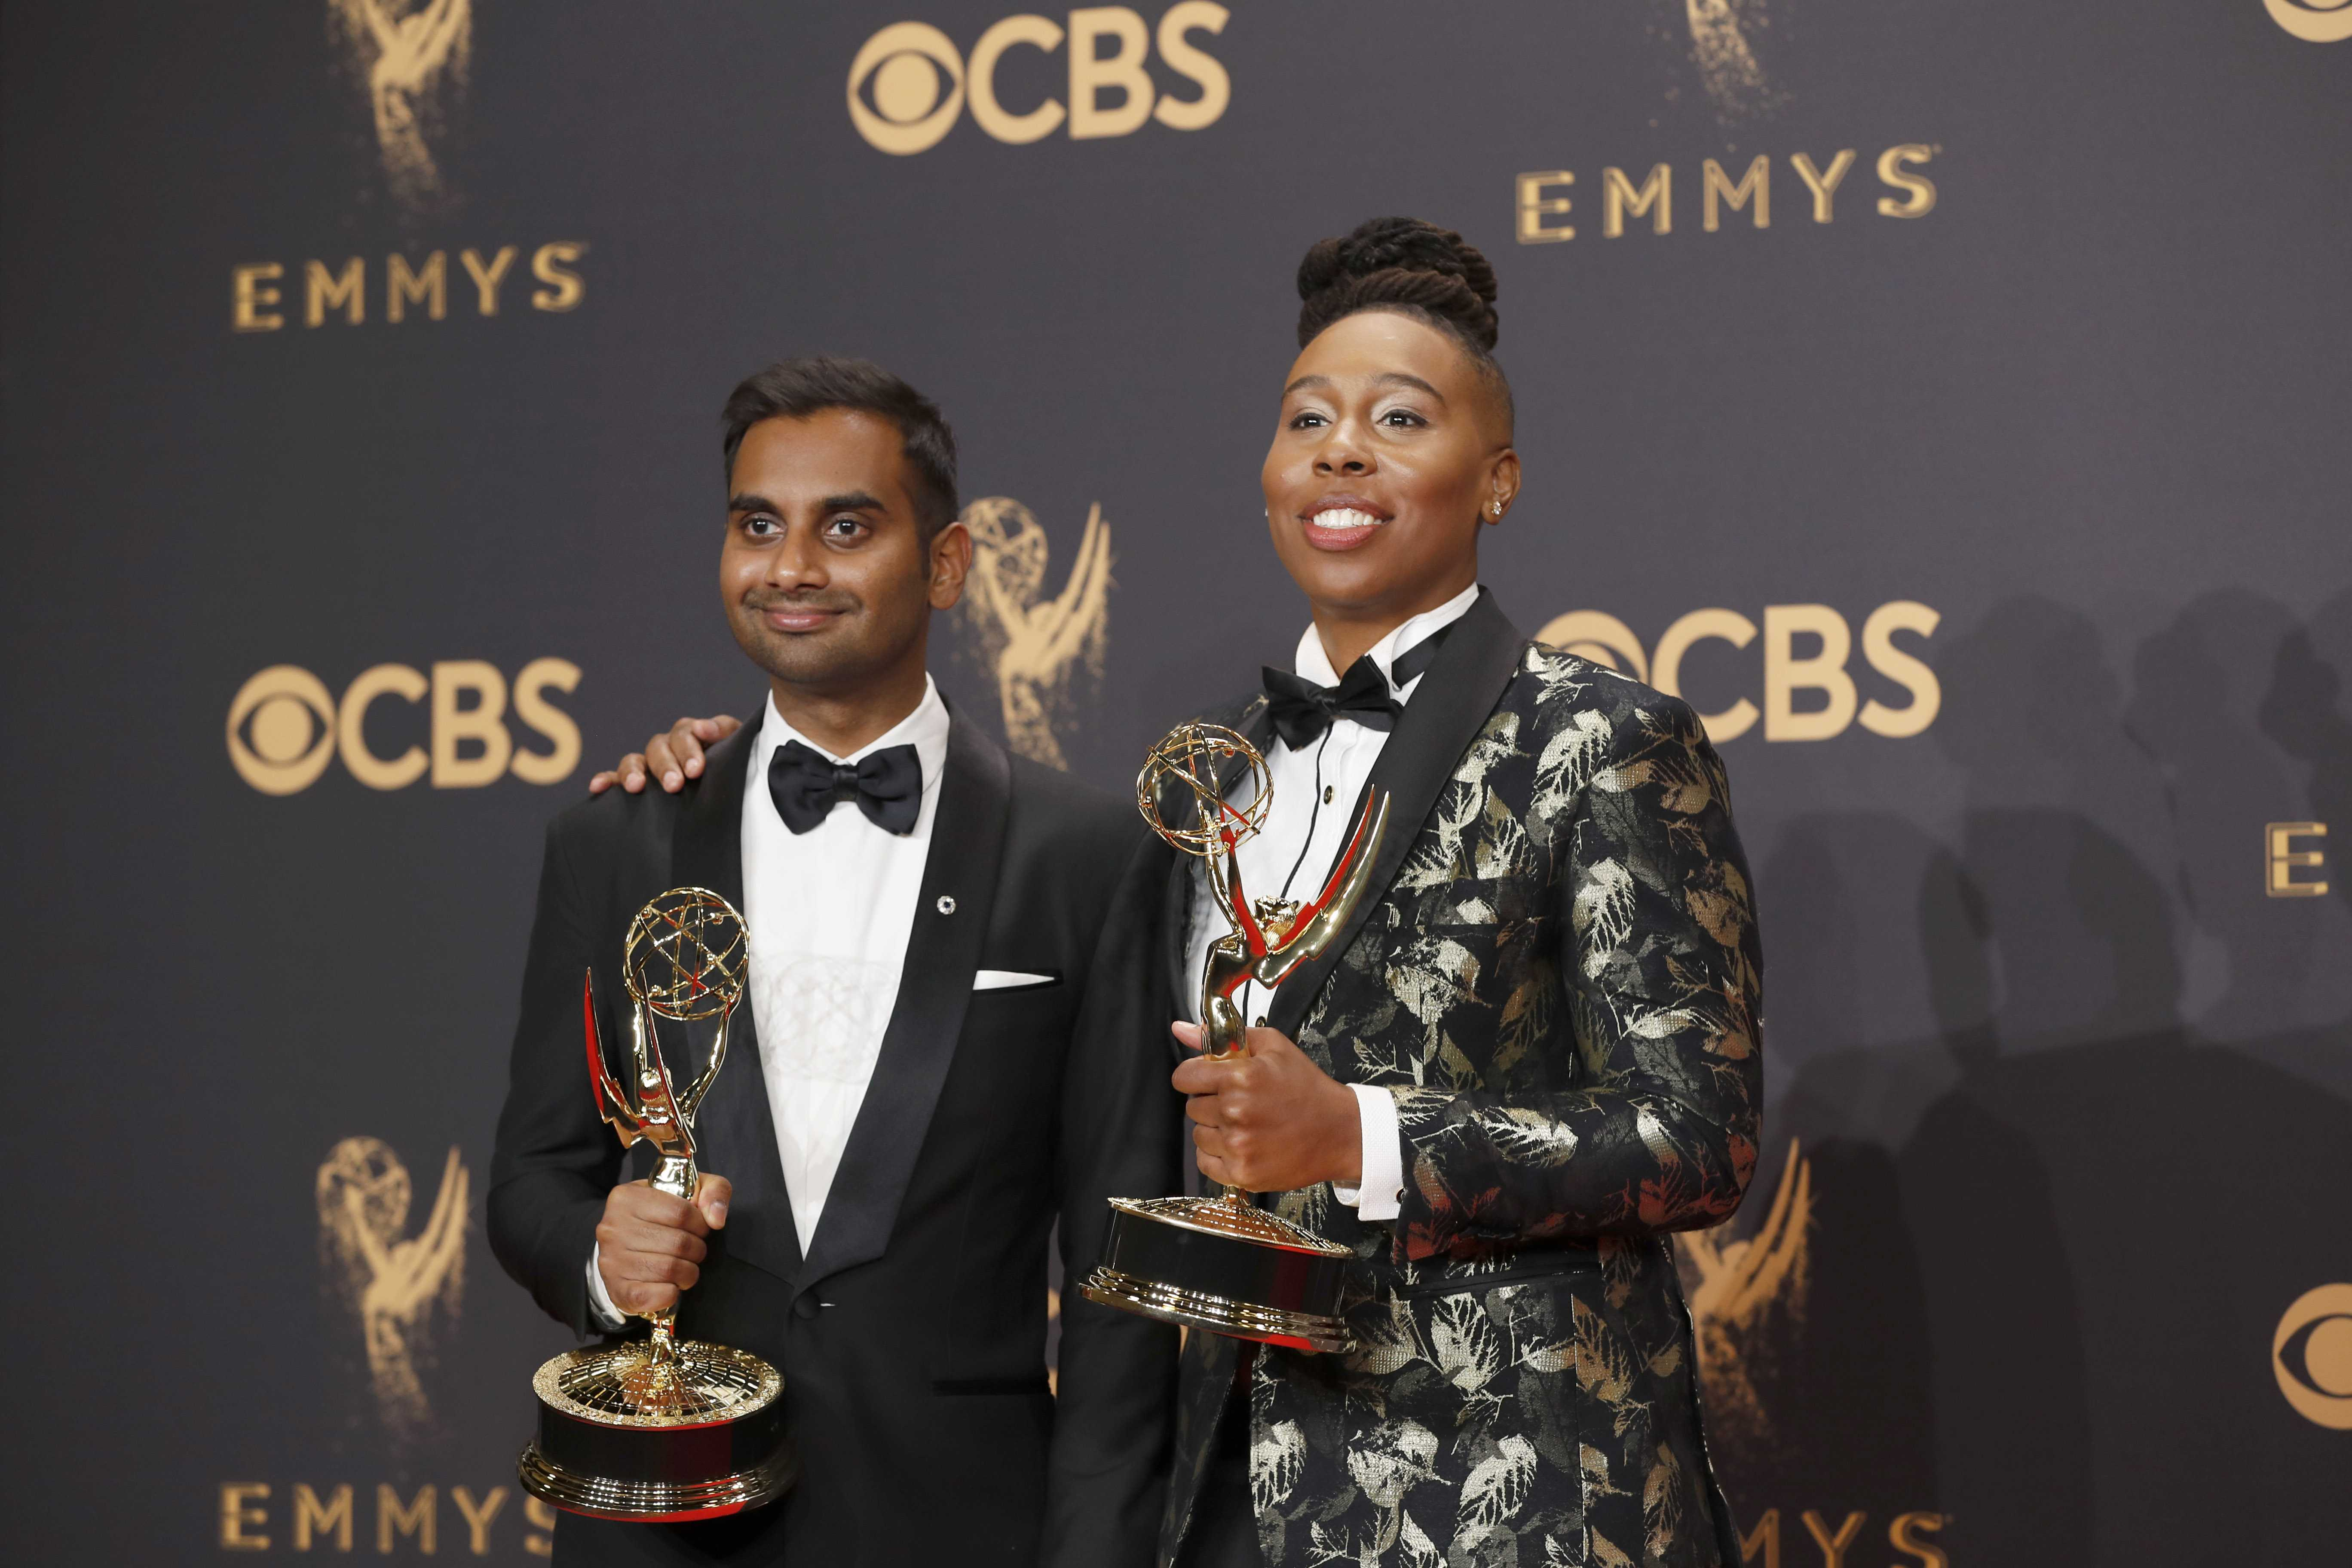 Aziz Ansari and Lena Waithe in the Trophy Room at the 69th Primetime Emmy Awards at the Microsoft Theater in Los Angeles on Sunday, Sept. 17, 2017. (Allen J. Schaben/Los Angeles Times/TNS)